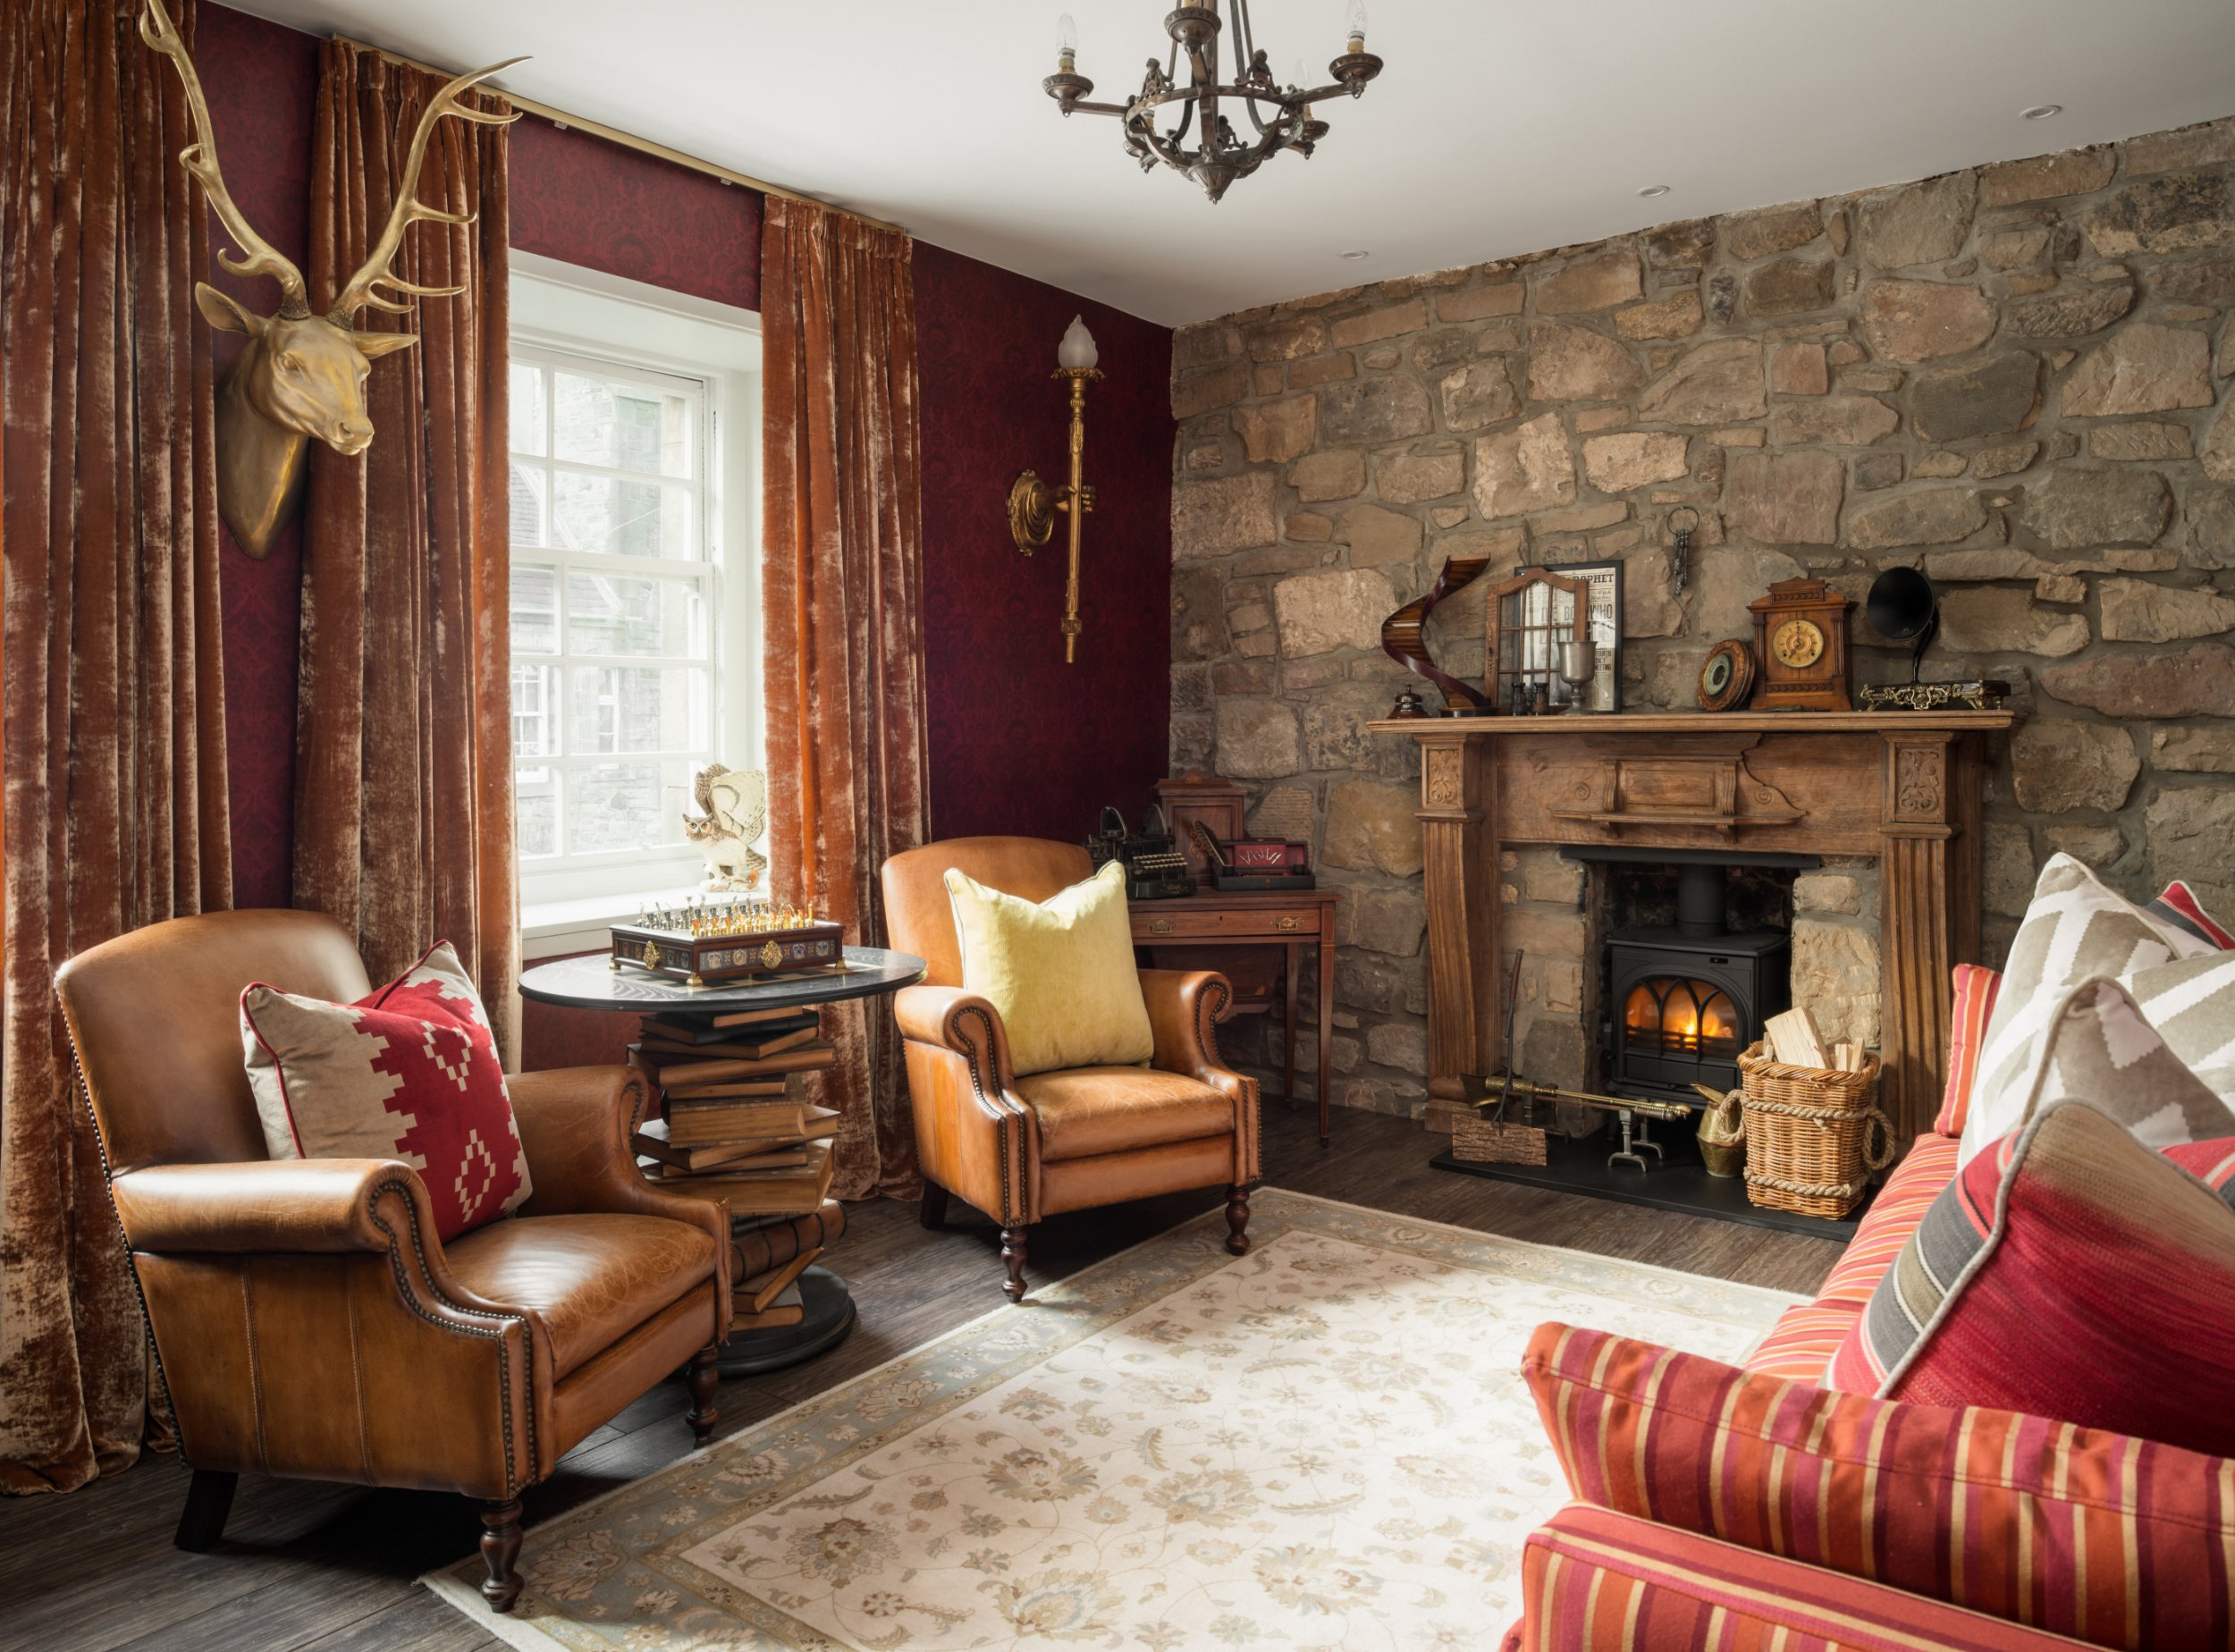 You Can Now Stay In A Luxury Harry Potter Themed Apartment ...